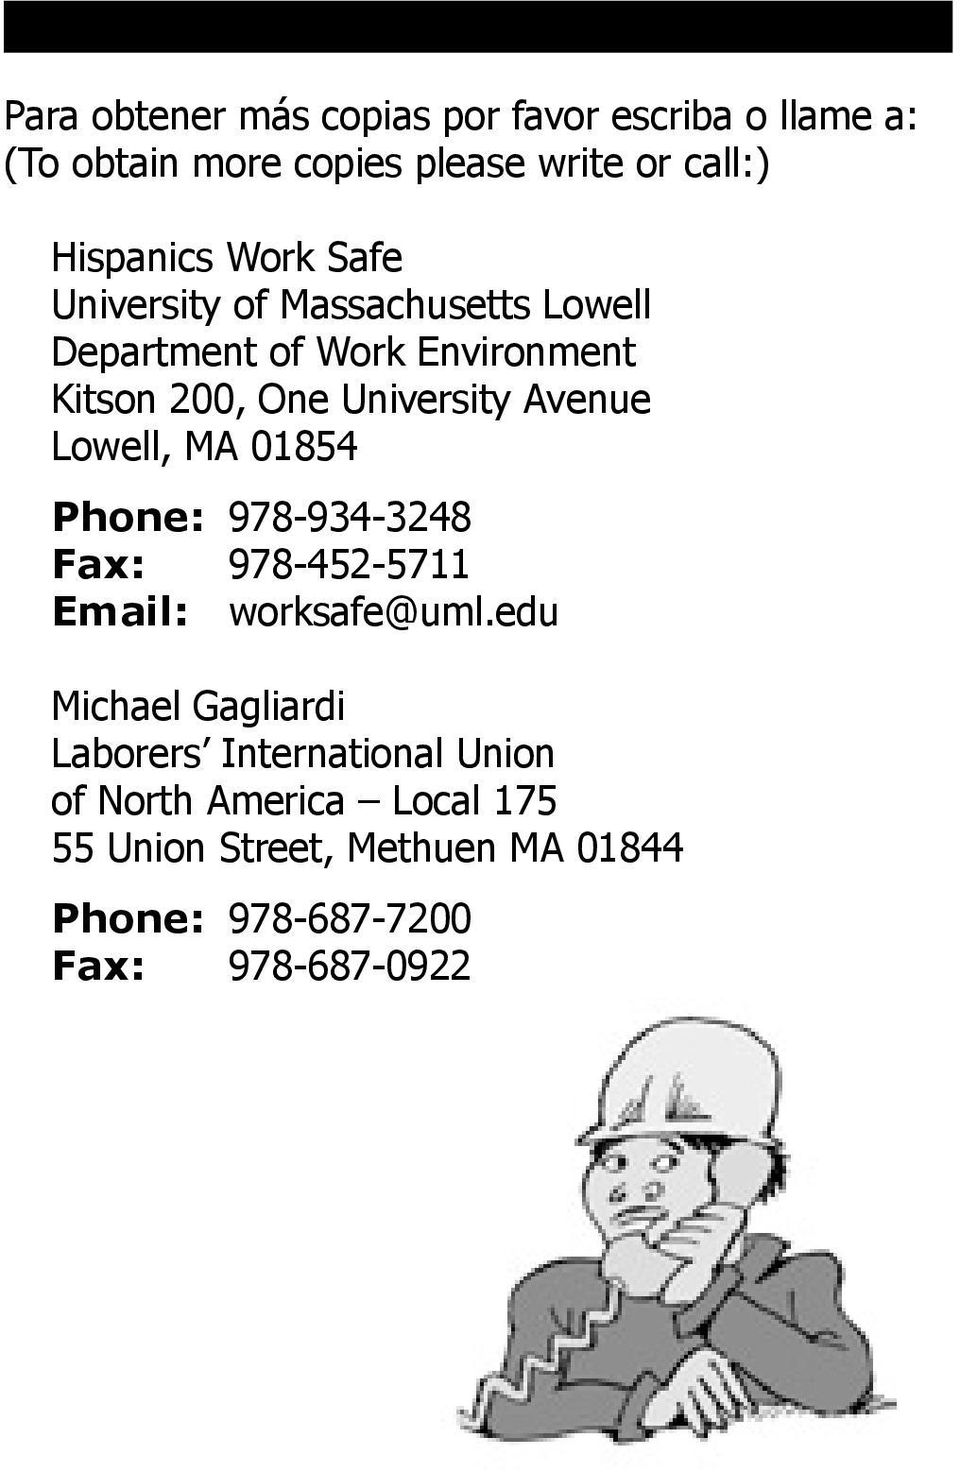 Lowell, MA 01854 Phone: 978-934-3248 Fax: 978-452-5711 Email: worksafe@uml.